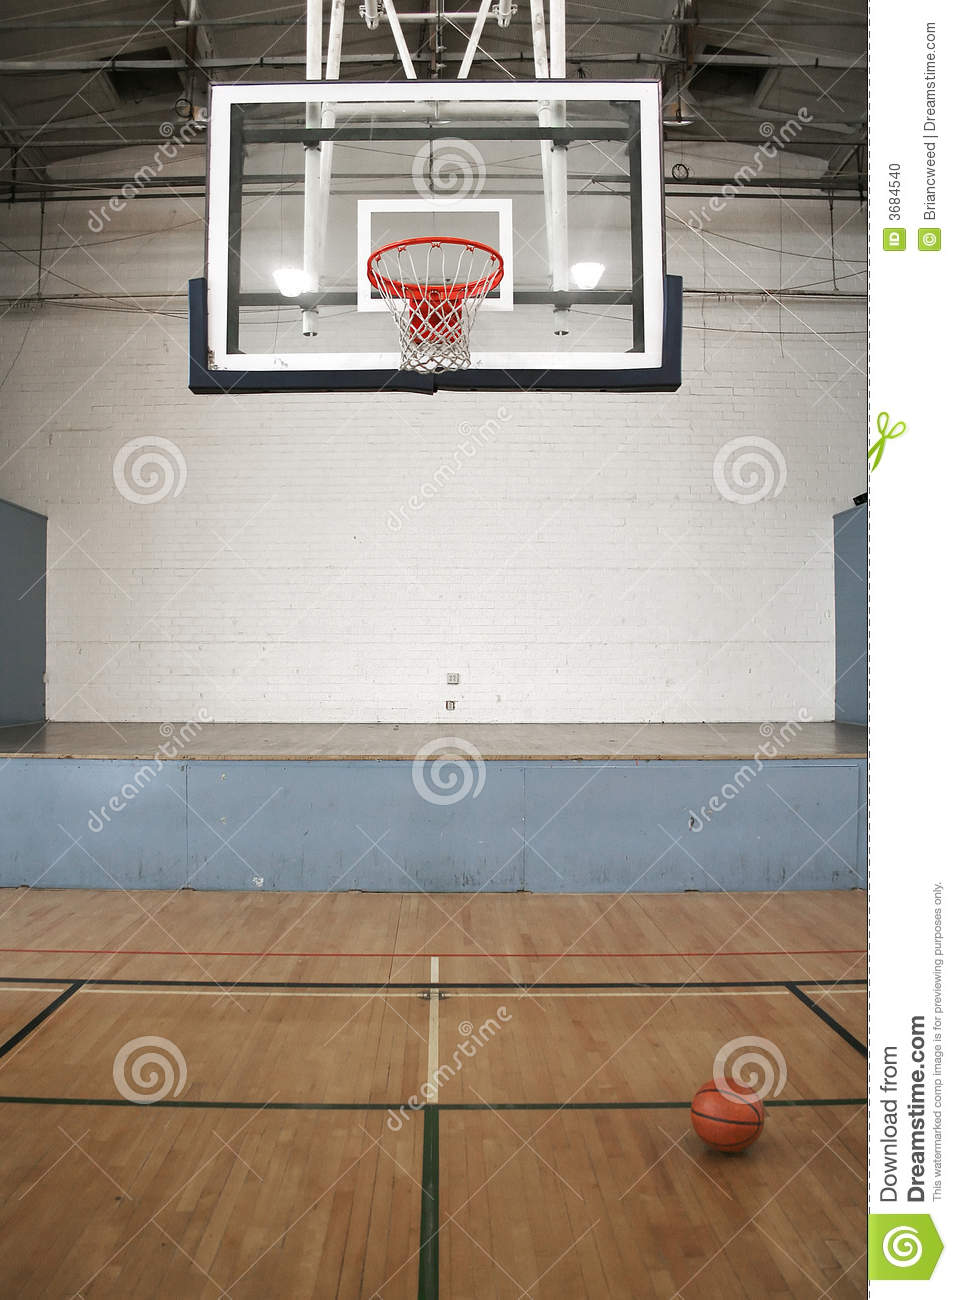 Basketball Court Amp Ball Stock Photo Image 3684540